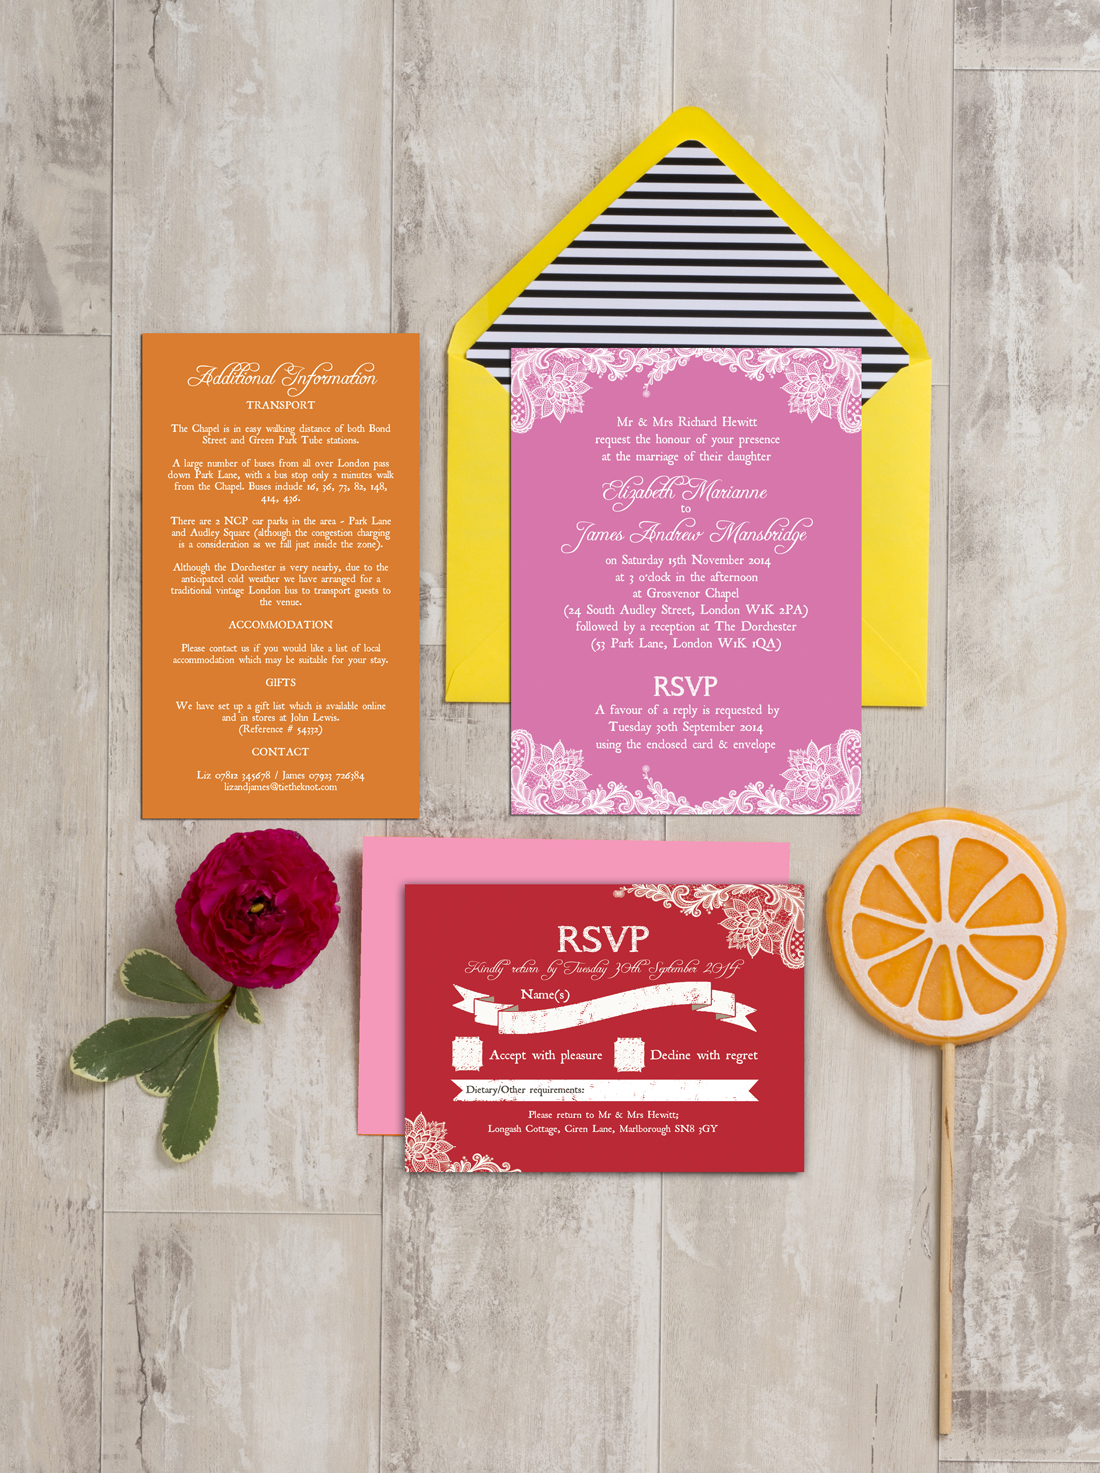 Wedding invitation wording etiquette advice please see this handy document for full examples of wedding invitation wording invitation wording examples for different family and wording scenarios ive stopboris Image collections